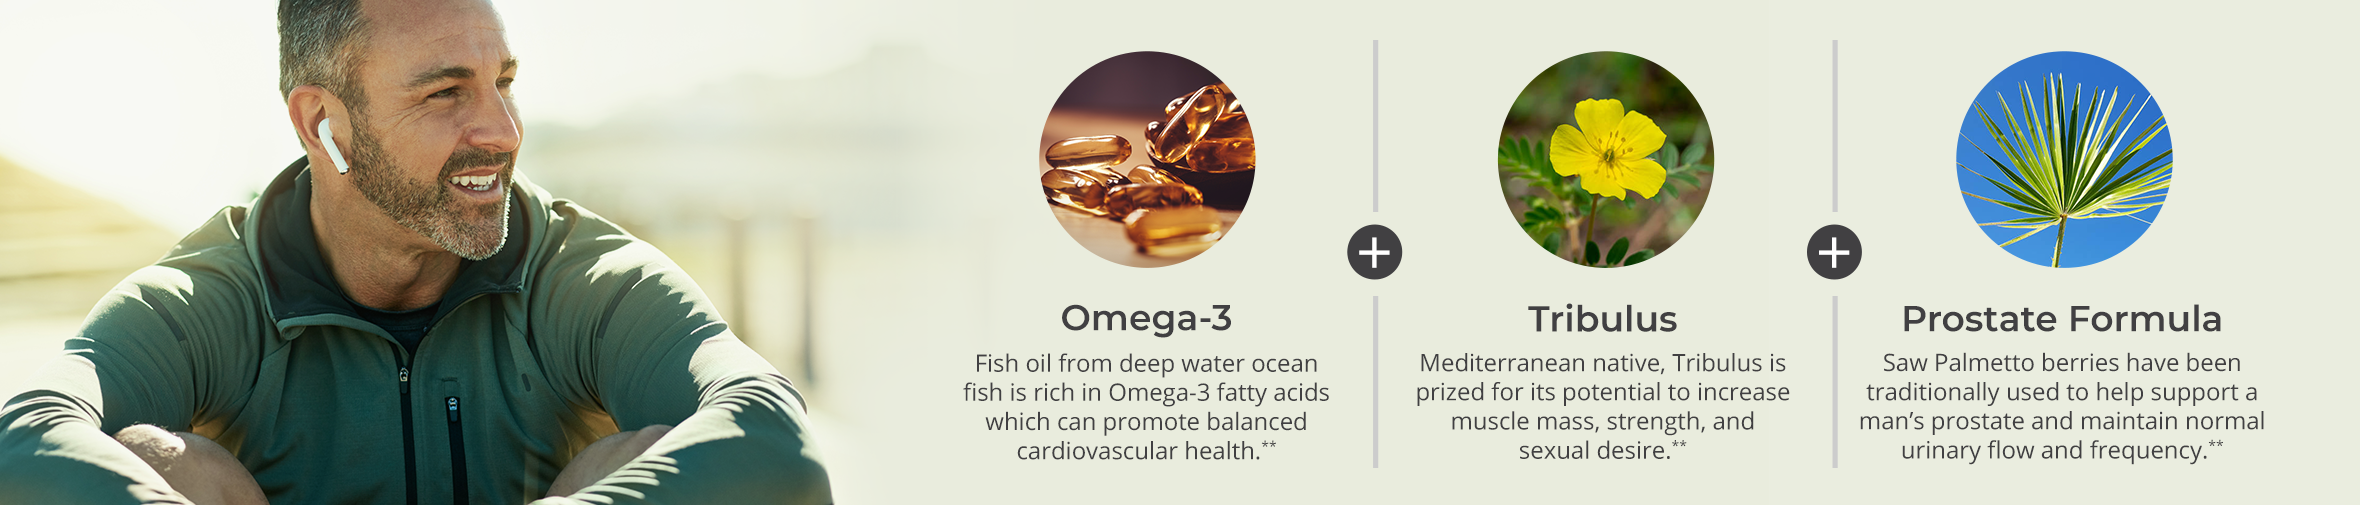 Omega-3 ( Fish oil from deep water ocean fish is rich in Omega-3 fatty acids which can promote balanced cardiovascular health.) plus Tribulus (Mediterranean native Tribulus is prized for its potential to increase muscle mass, strength, and sexual desire.) plus Prostate Formula (Saw Palmetto berries have been traditionally used to support a man's prostate and maintain normal urinary flow and frequency.)